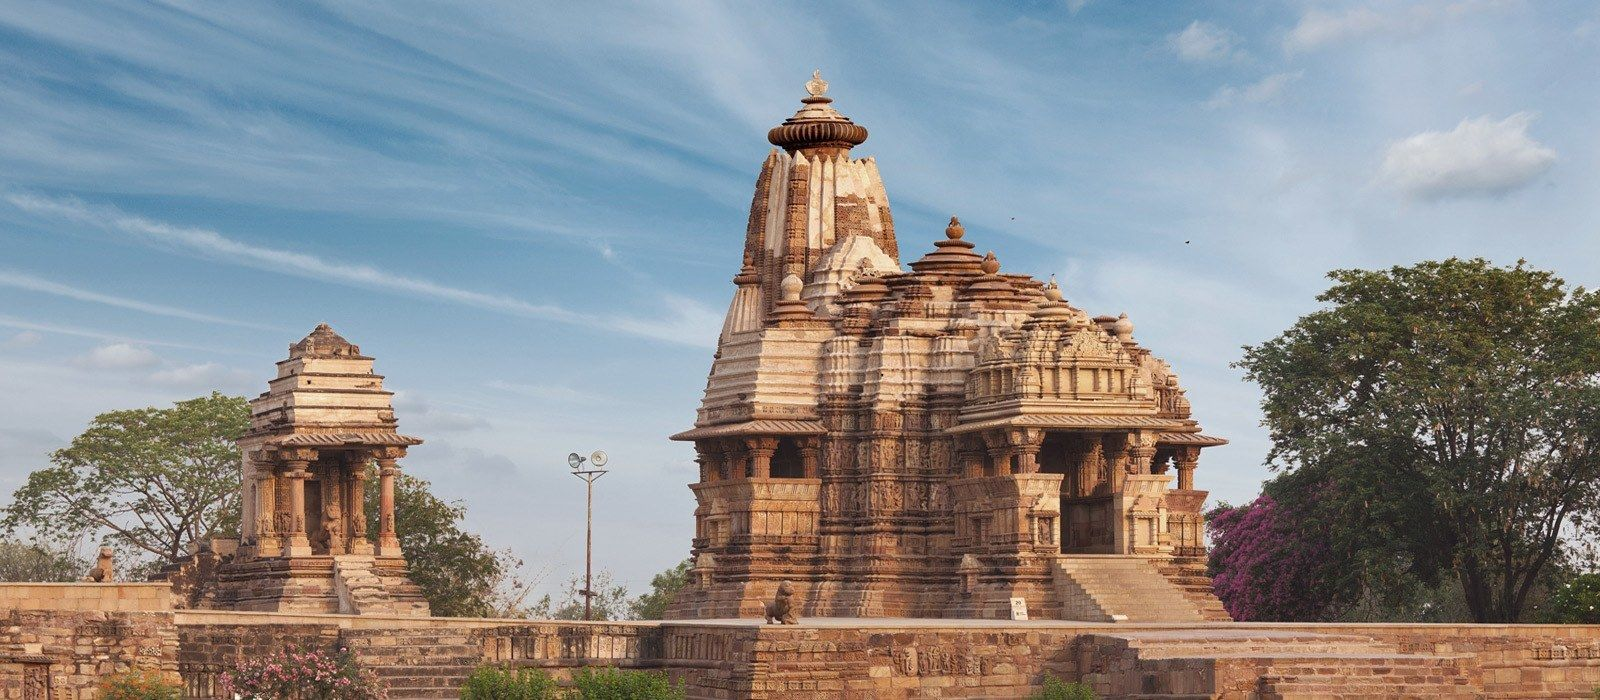 Destination Khajuraho North India